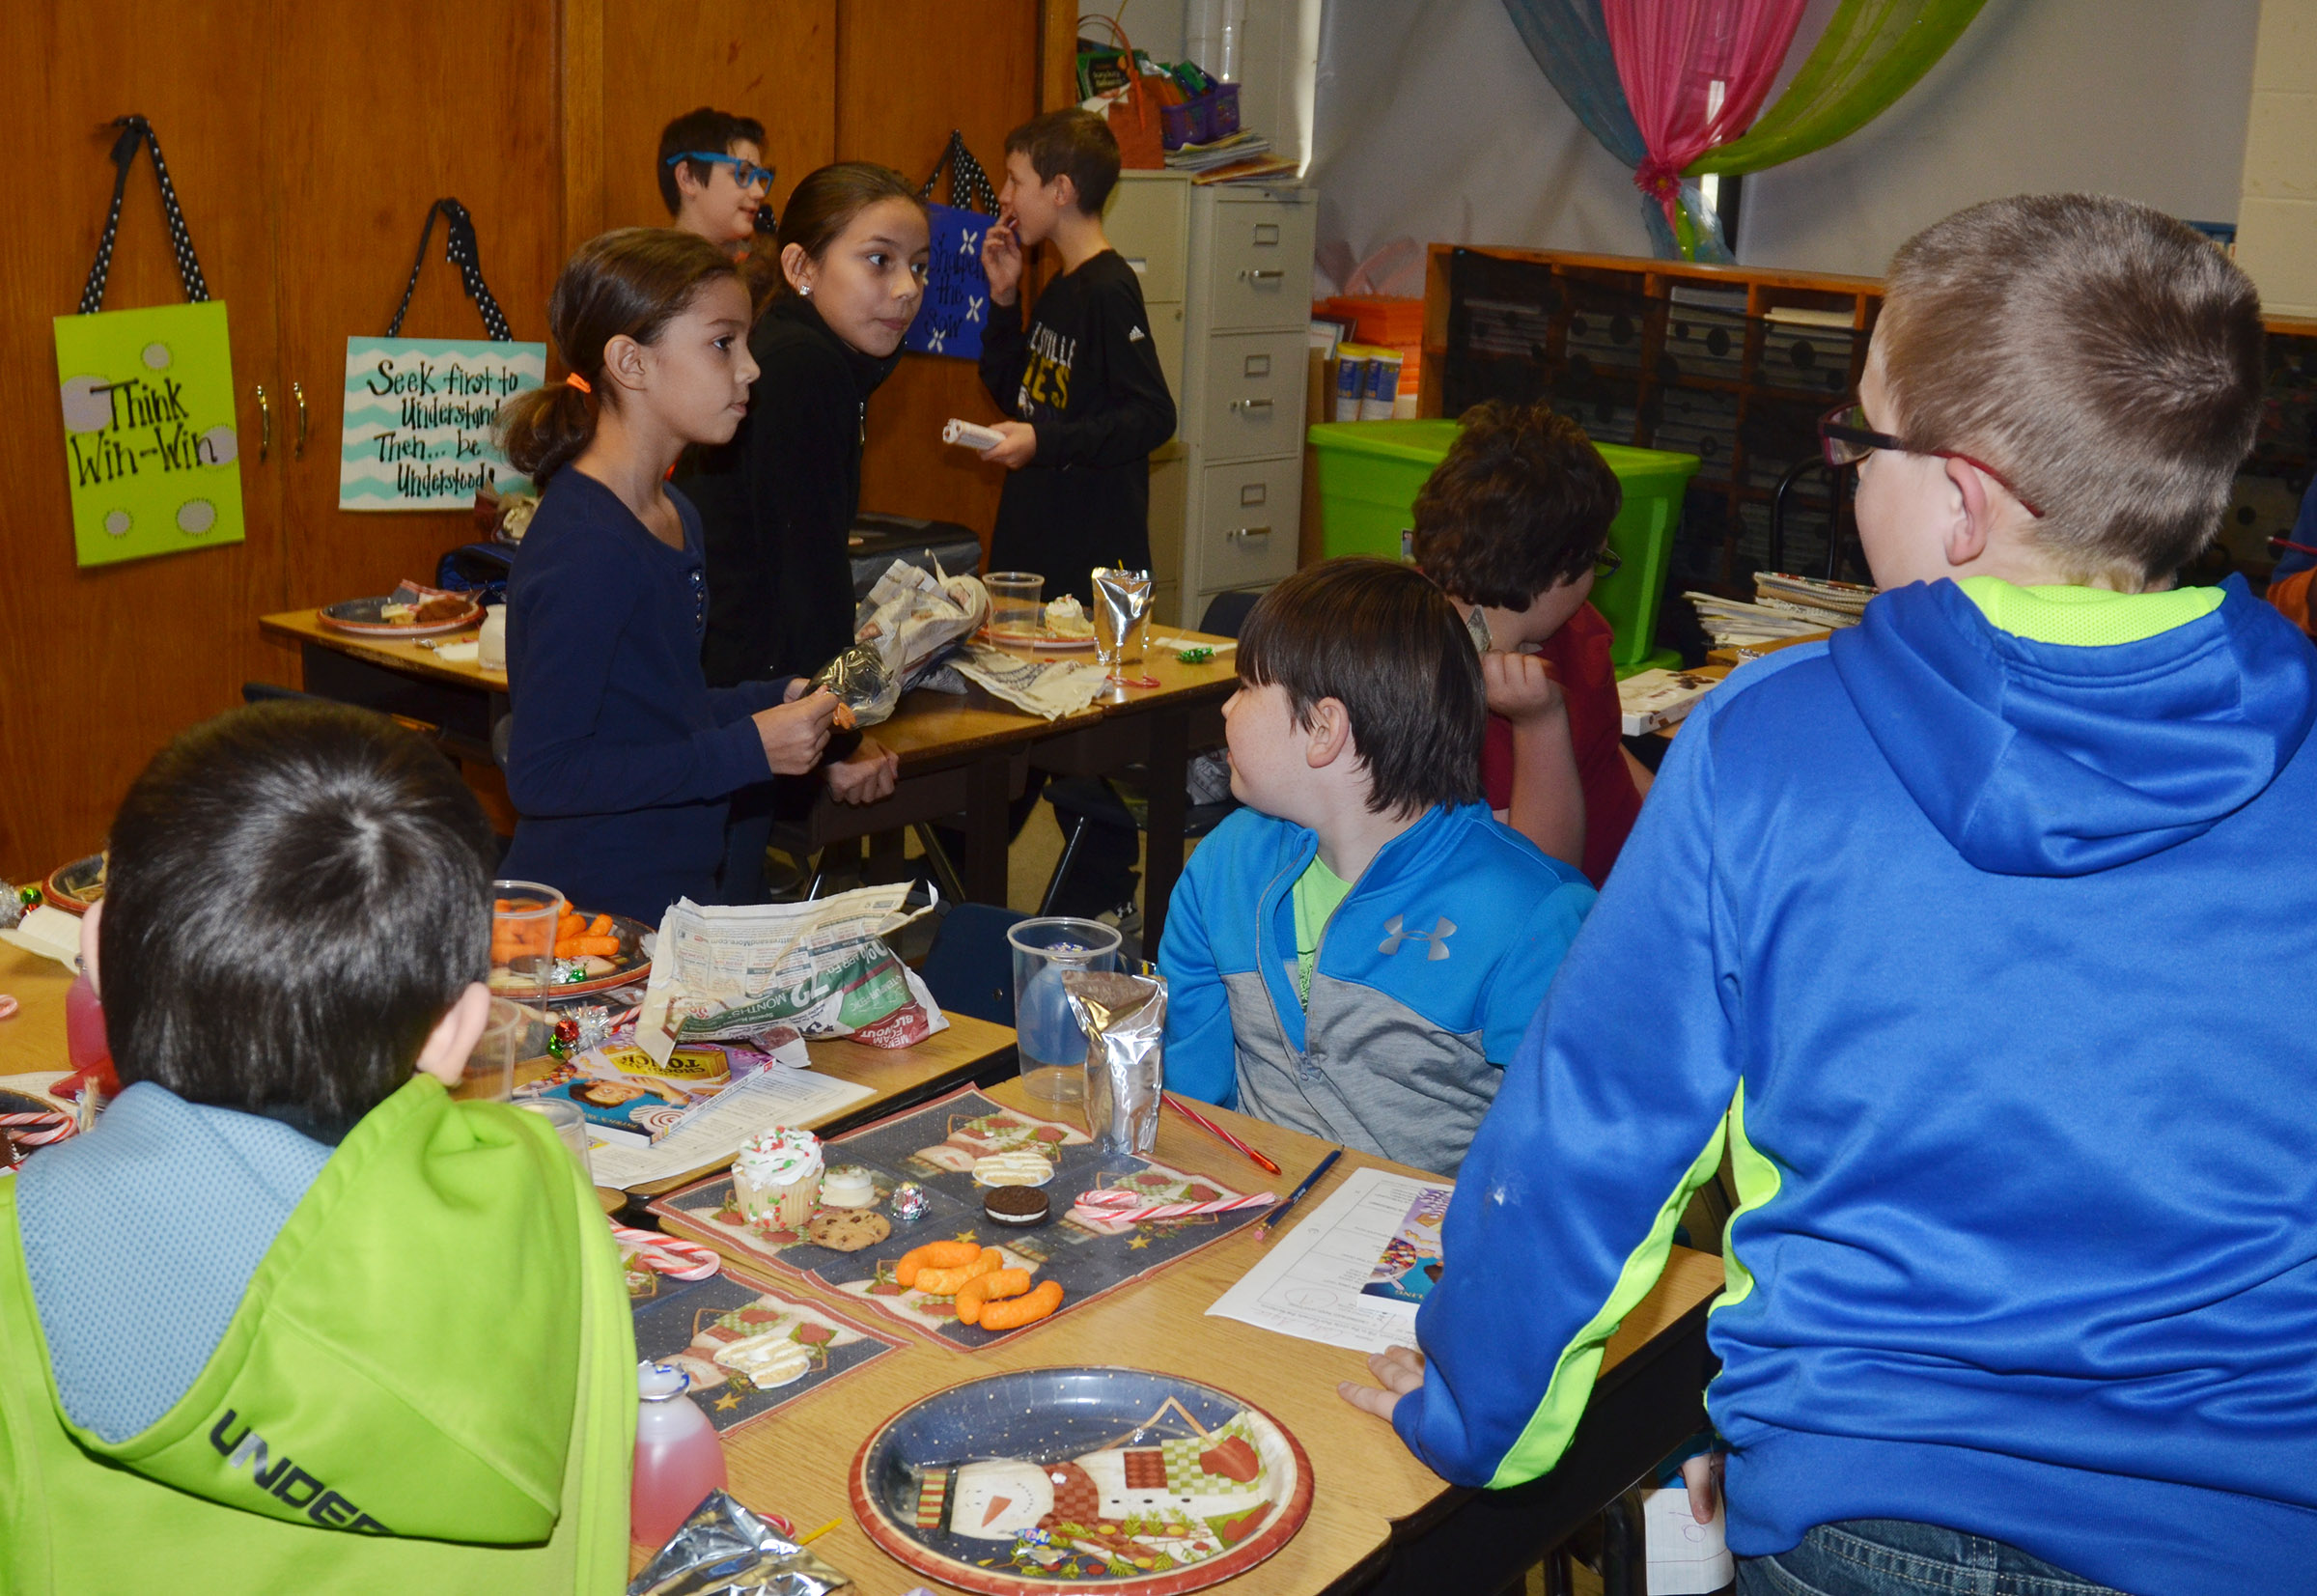 CMS fourth-graders decide if they want to keep their gifts or steal from their classmates.